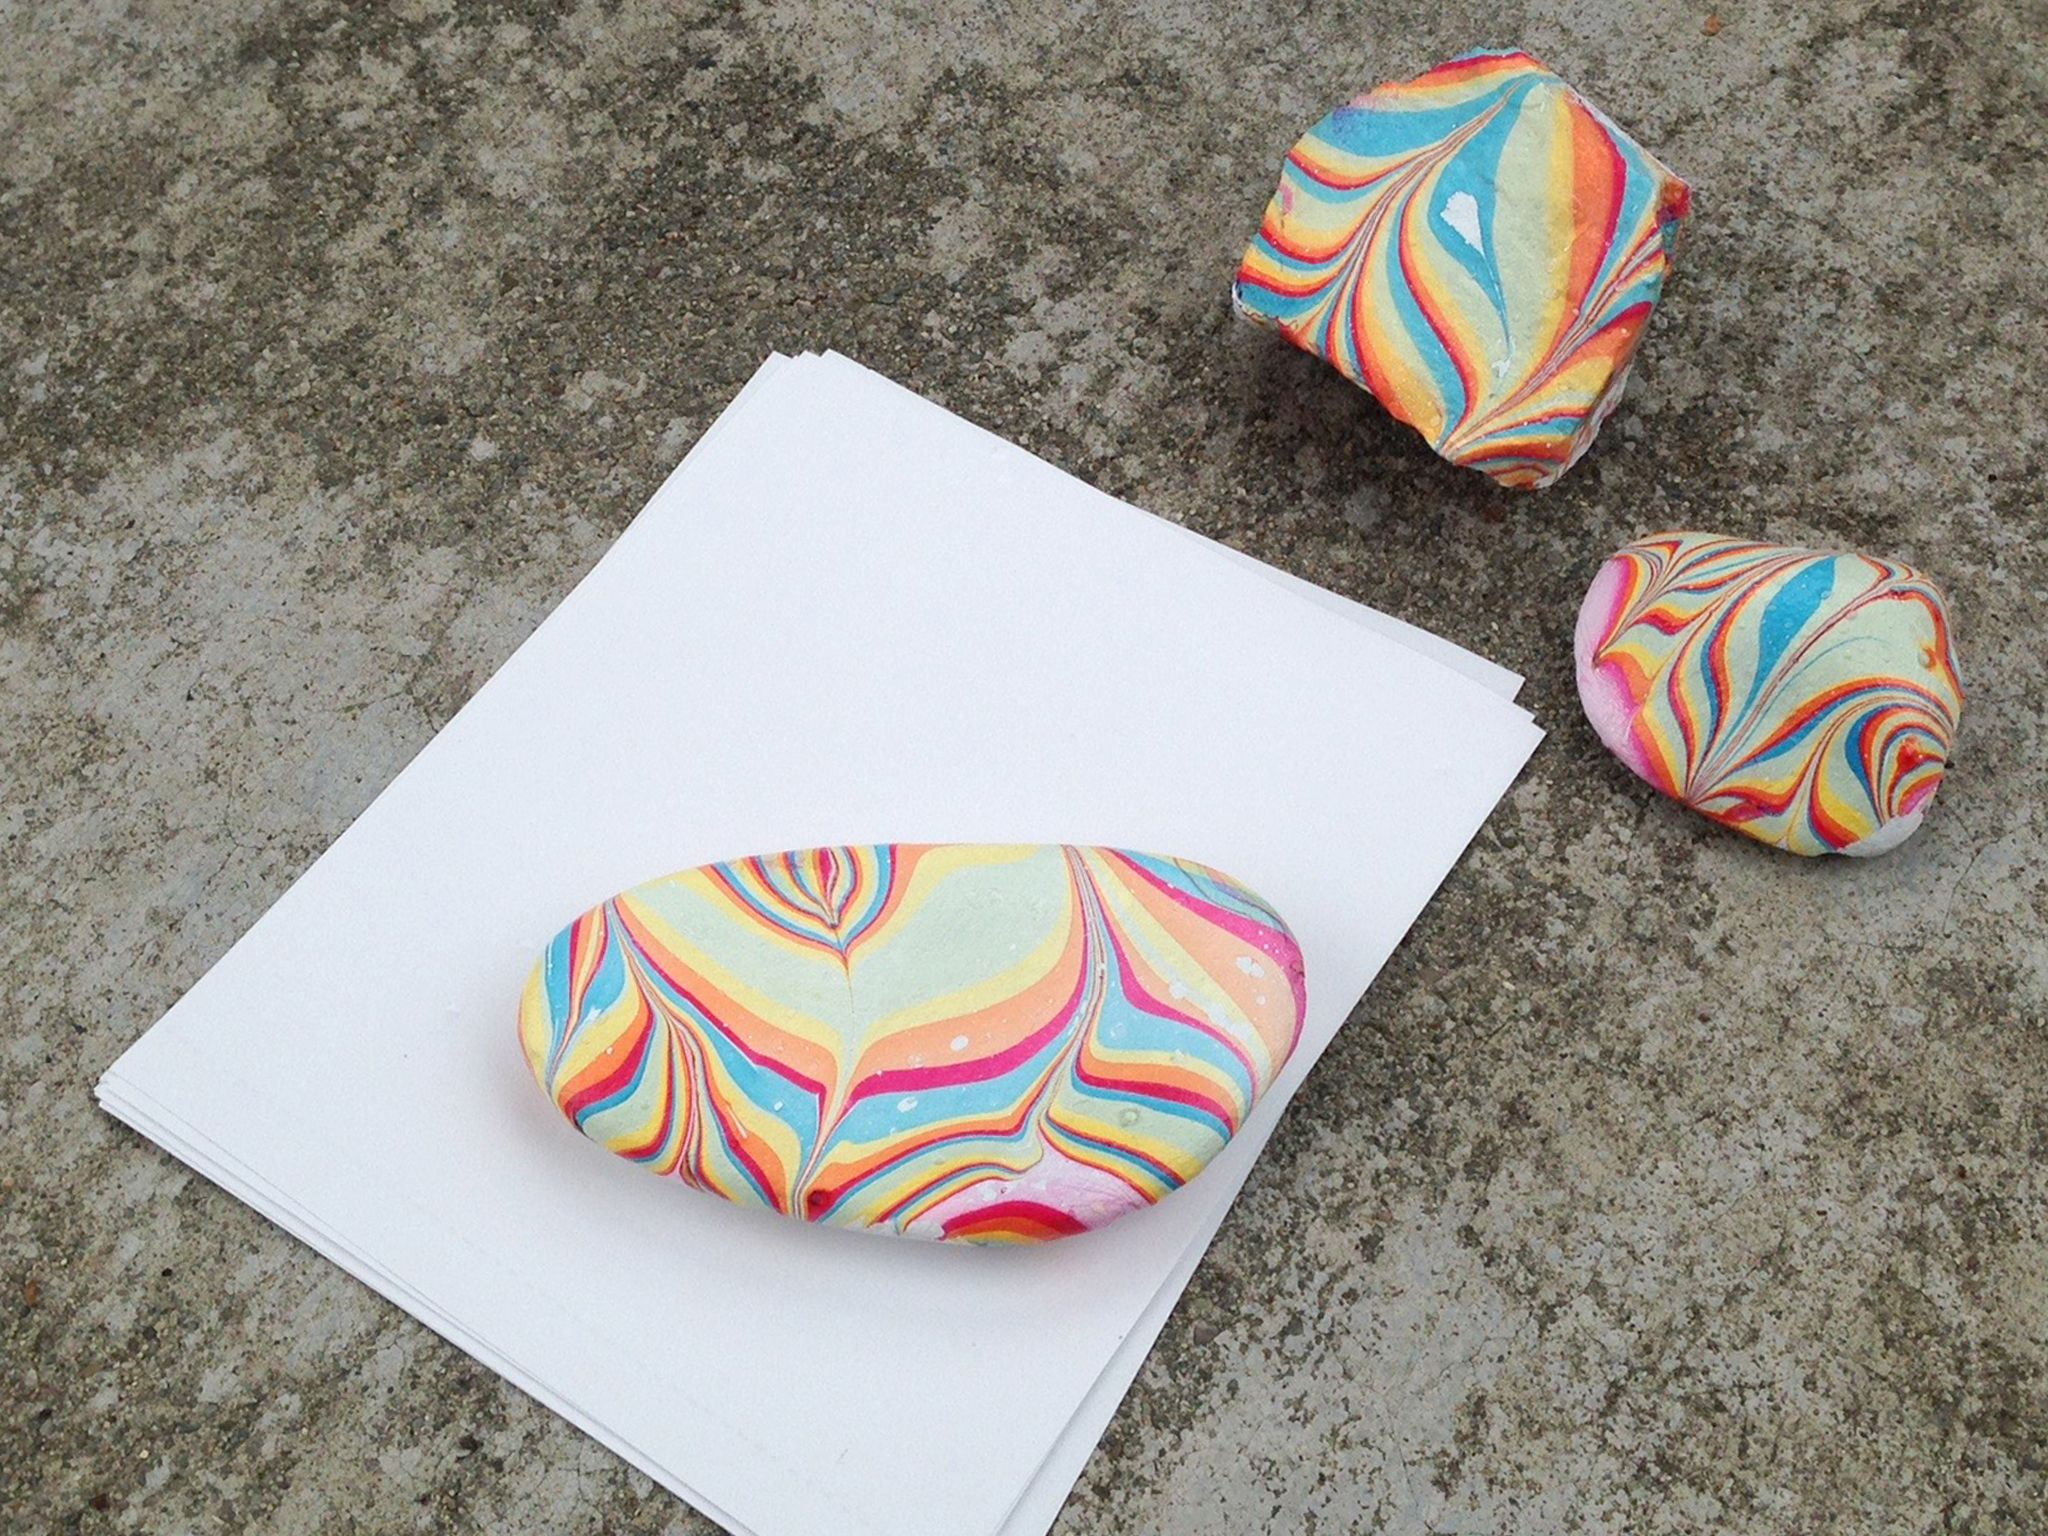 These Pretty Rainbow Rocks Are Perfect For Brightening Up Your Desk